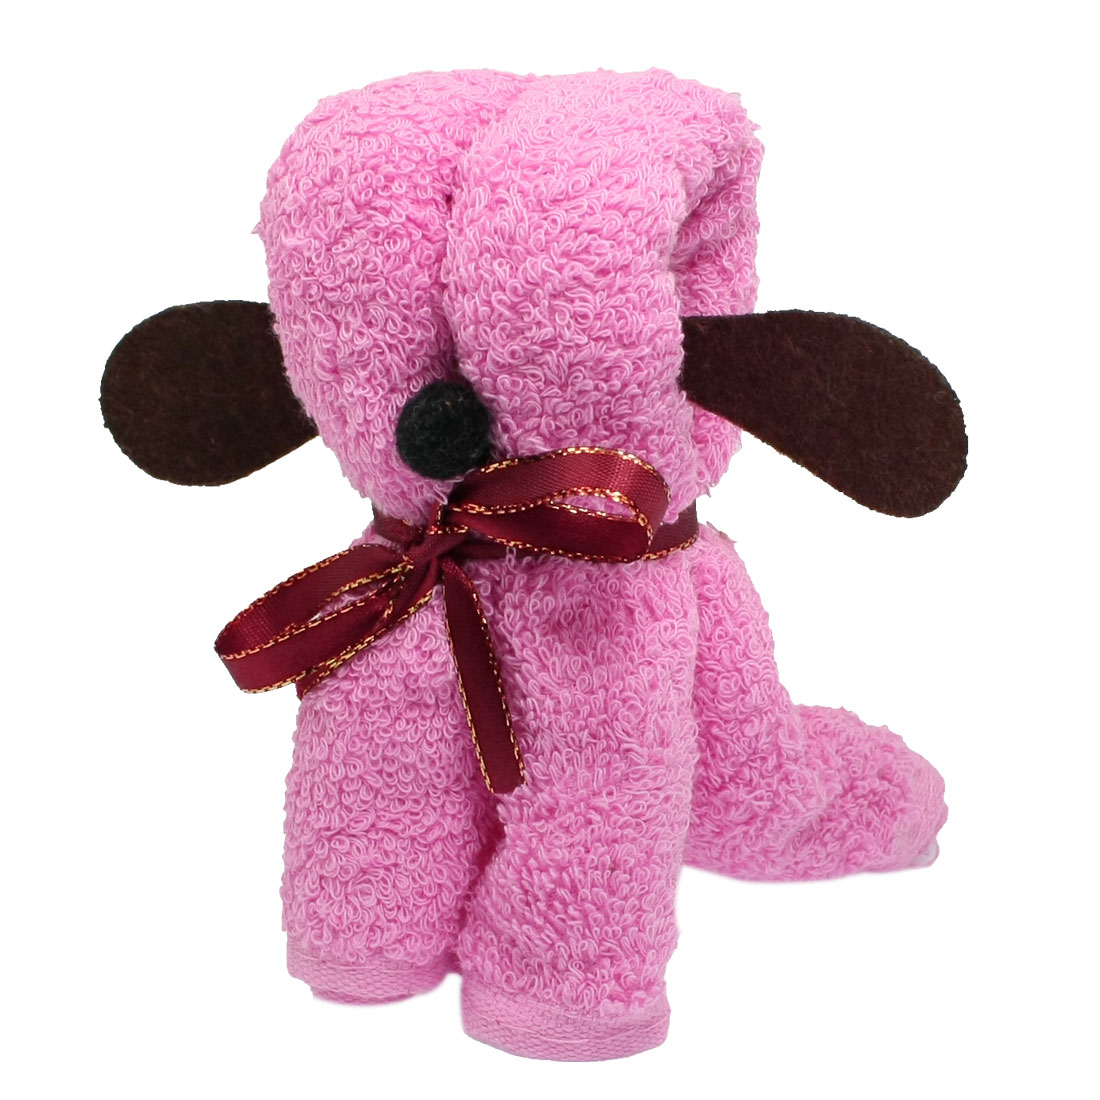 Wedding Favor Burgundy Ribbon Pink Terry Puppy Design Hand Towel 29cm x 29cm